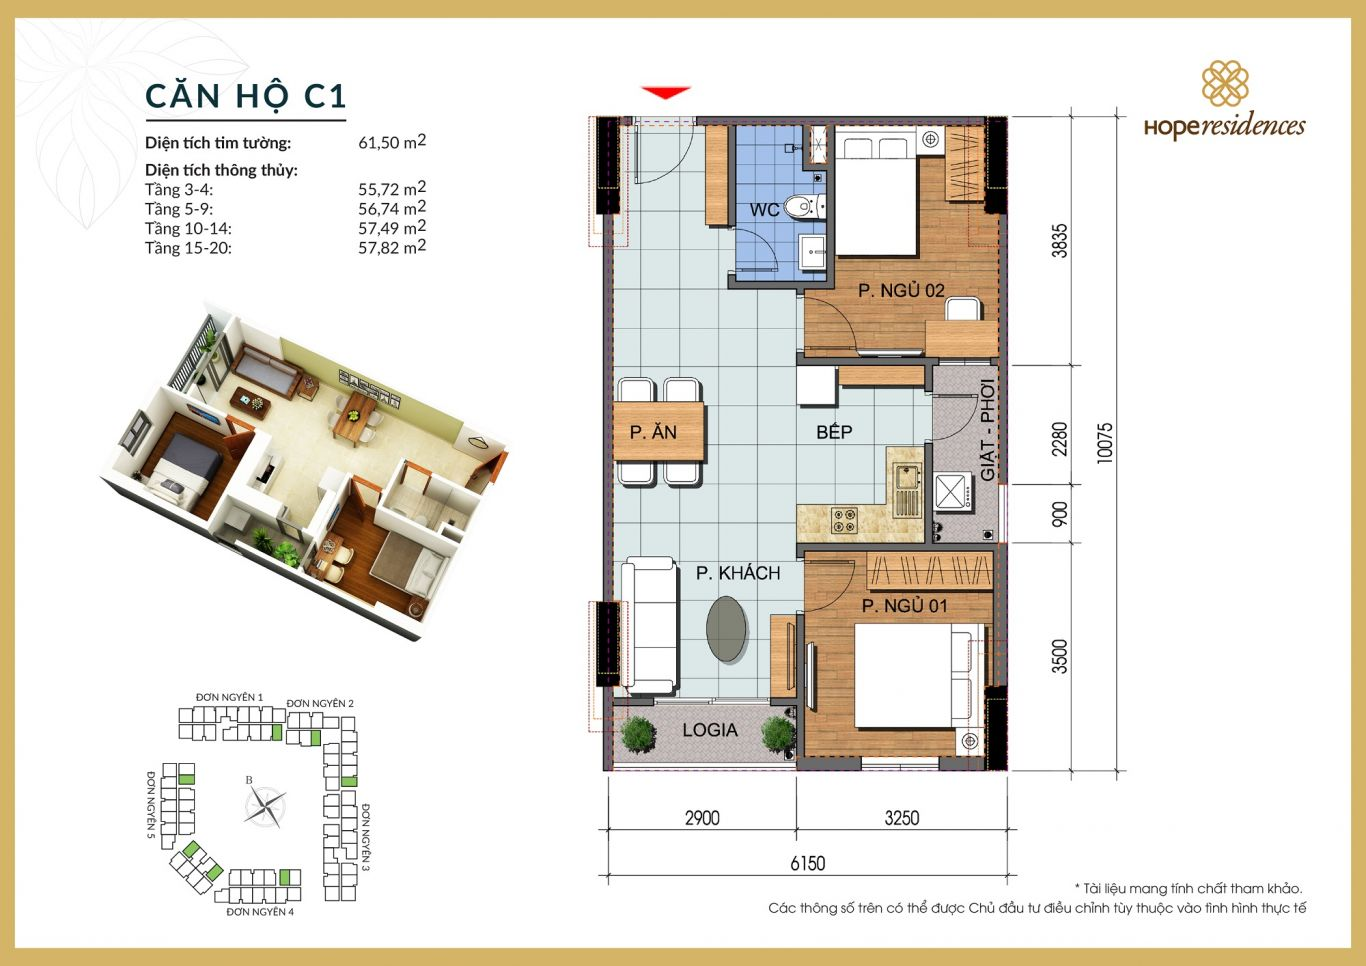 mat-bang-thiet-ke-can-ho-c1-hope-residences